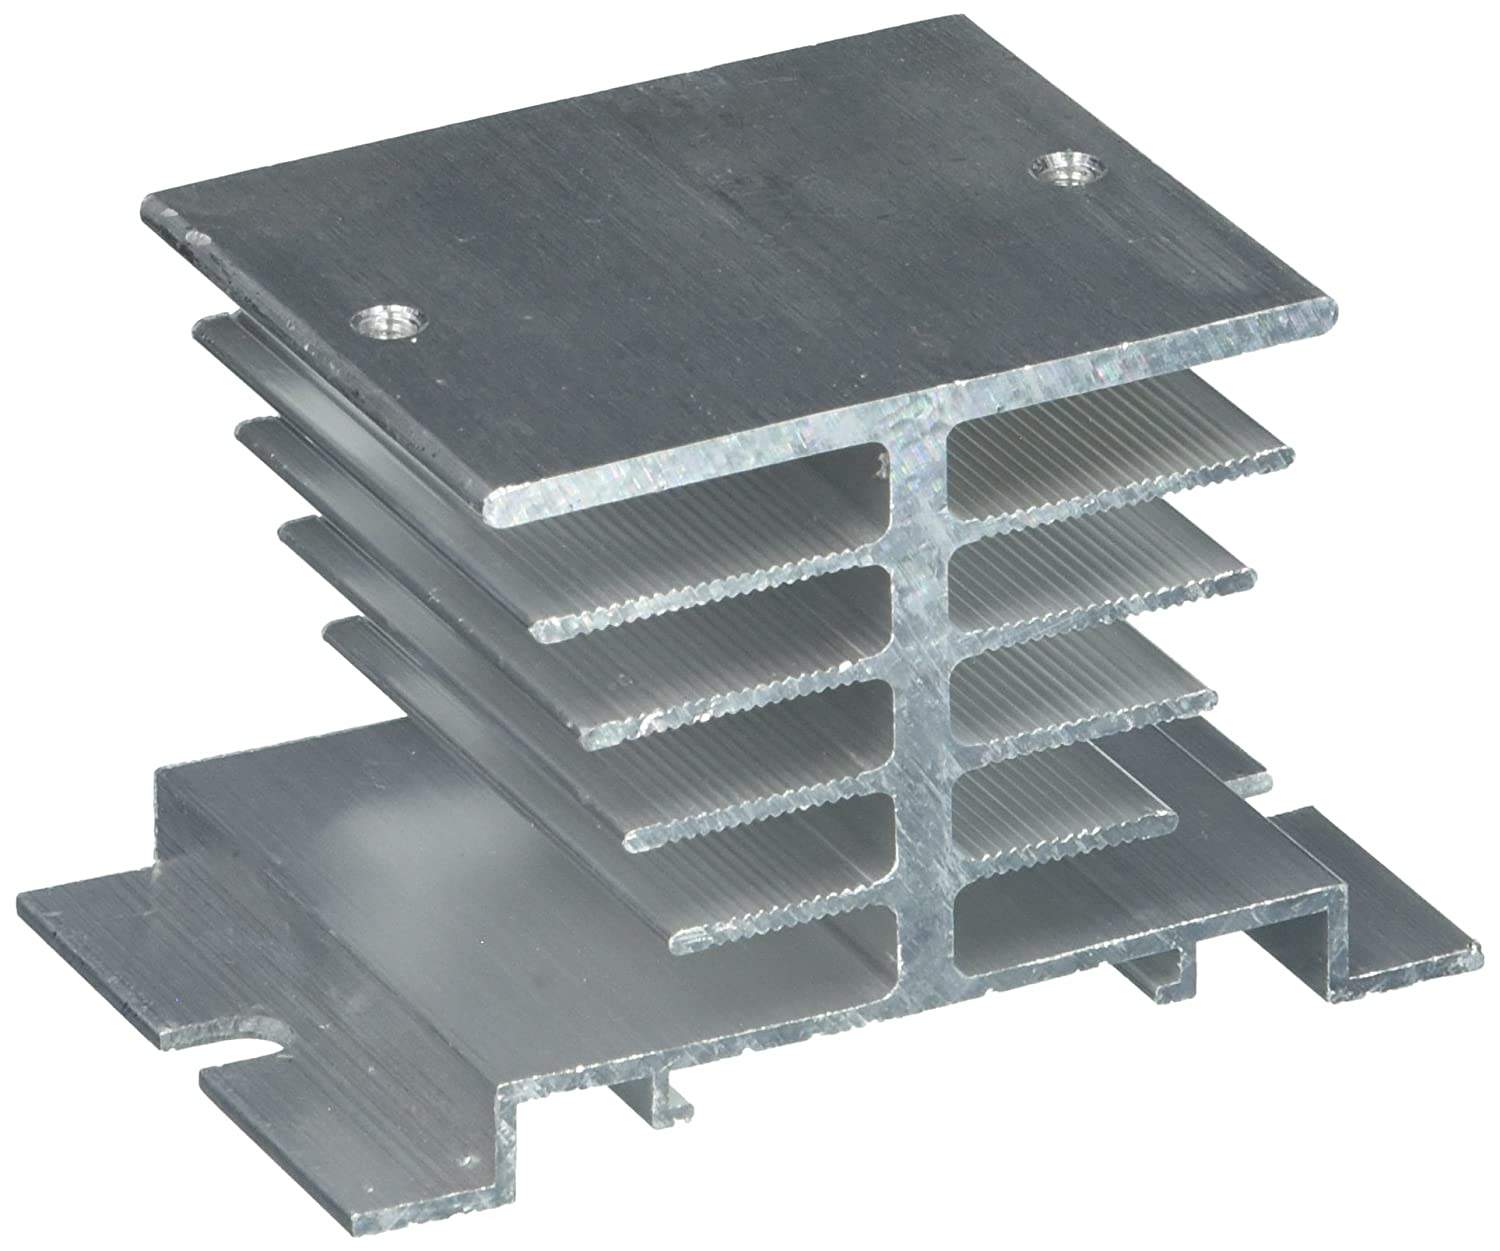 Uxcell Dissipation Aluminum Heat Sink for Single Phase Solid State Relay